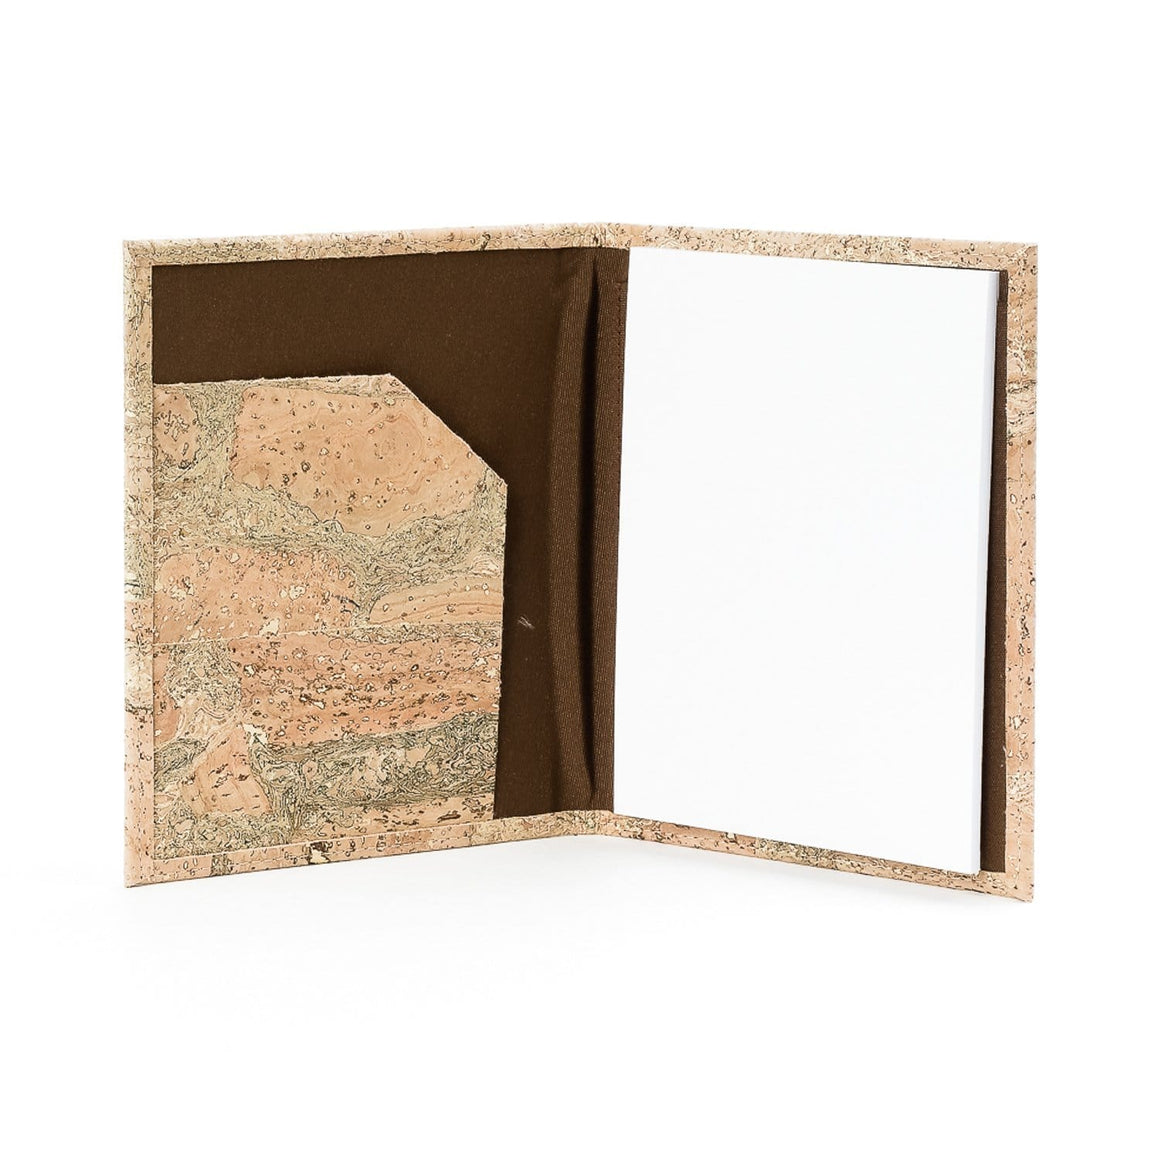 Cork Notebook Folder - Naturally Anti-Microbial Hypoallergenic Sustainable Eco-Friendly Cork